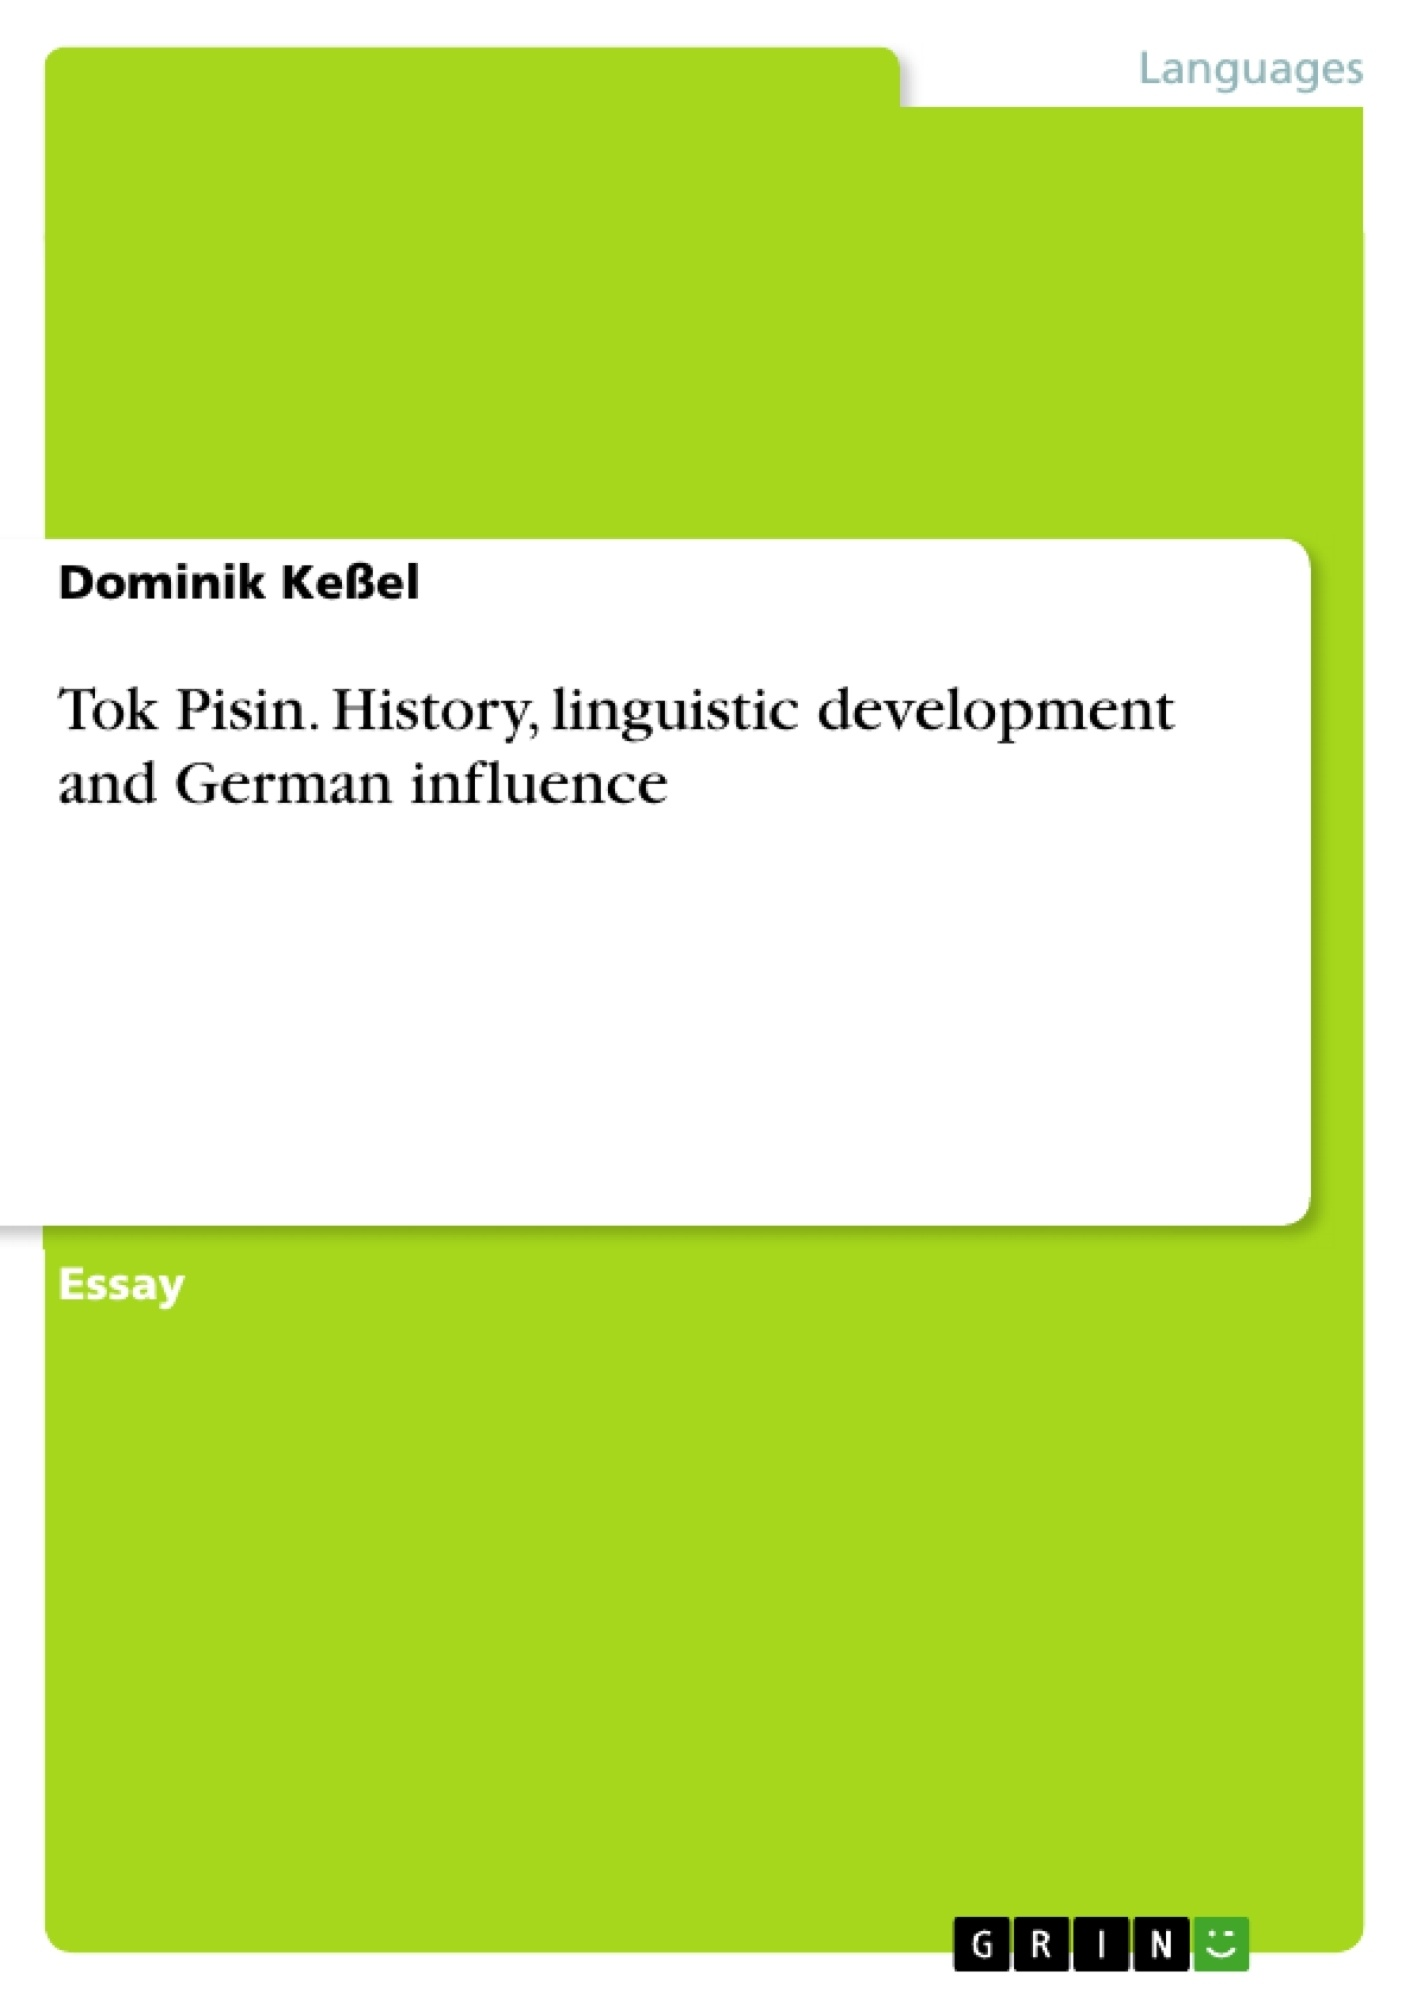 Title: Tok Pisin. History, linguistic development and German influence